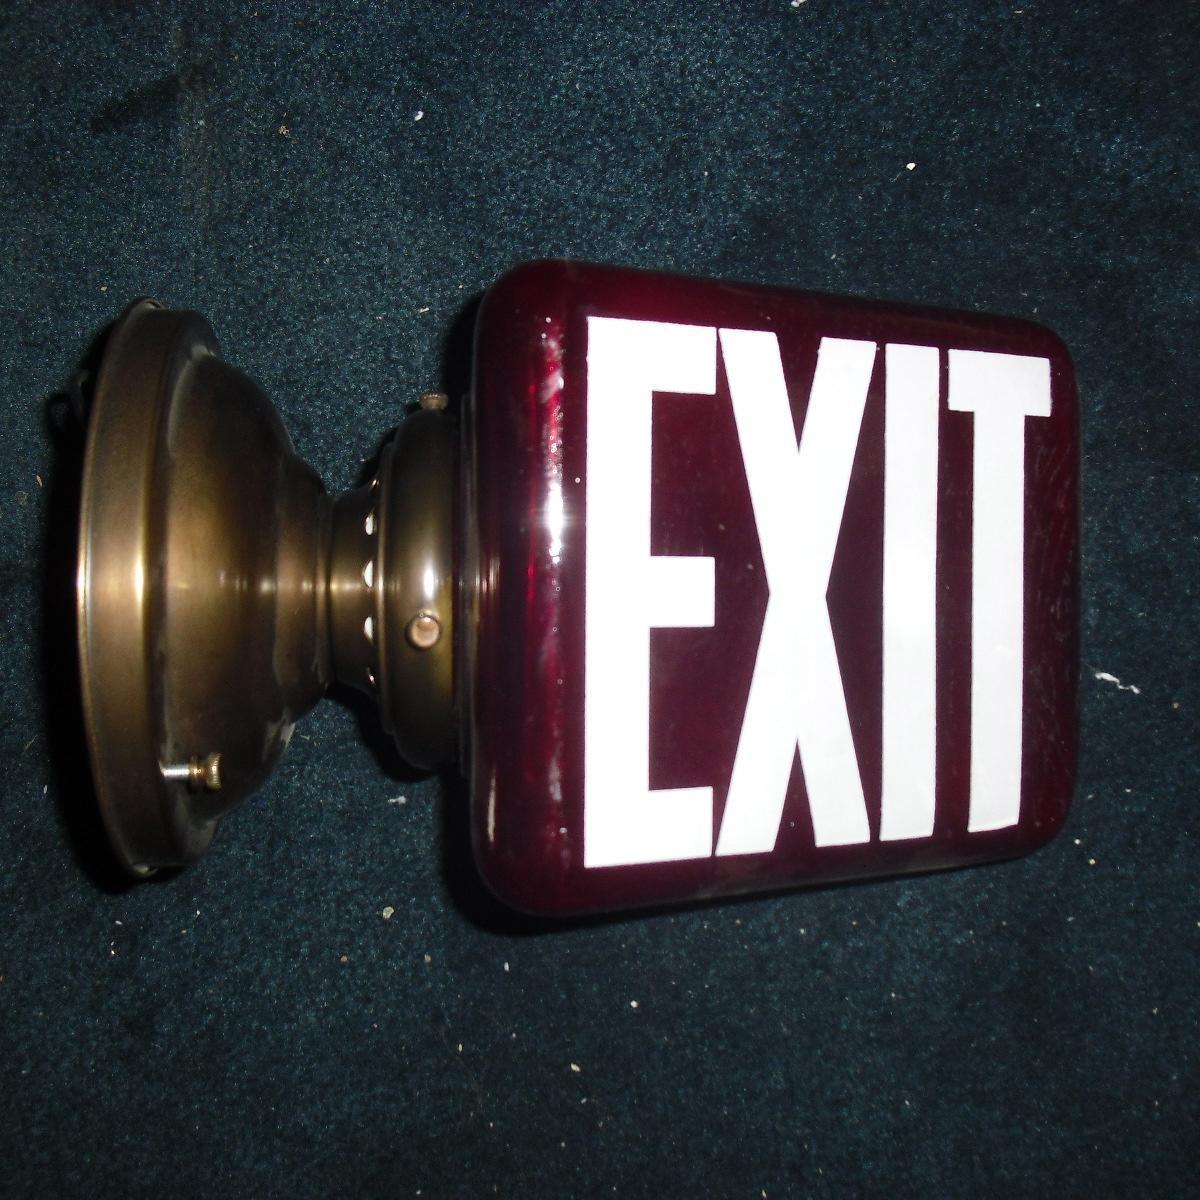 Wall Mounted Exit Lights : Deep Red Glass Triangular Exit Light - Wall Mount from sherlocksantiquelights on Ruby Lane